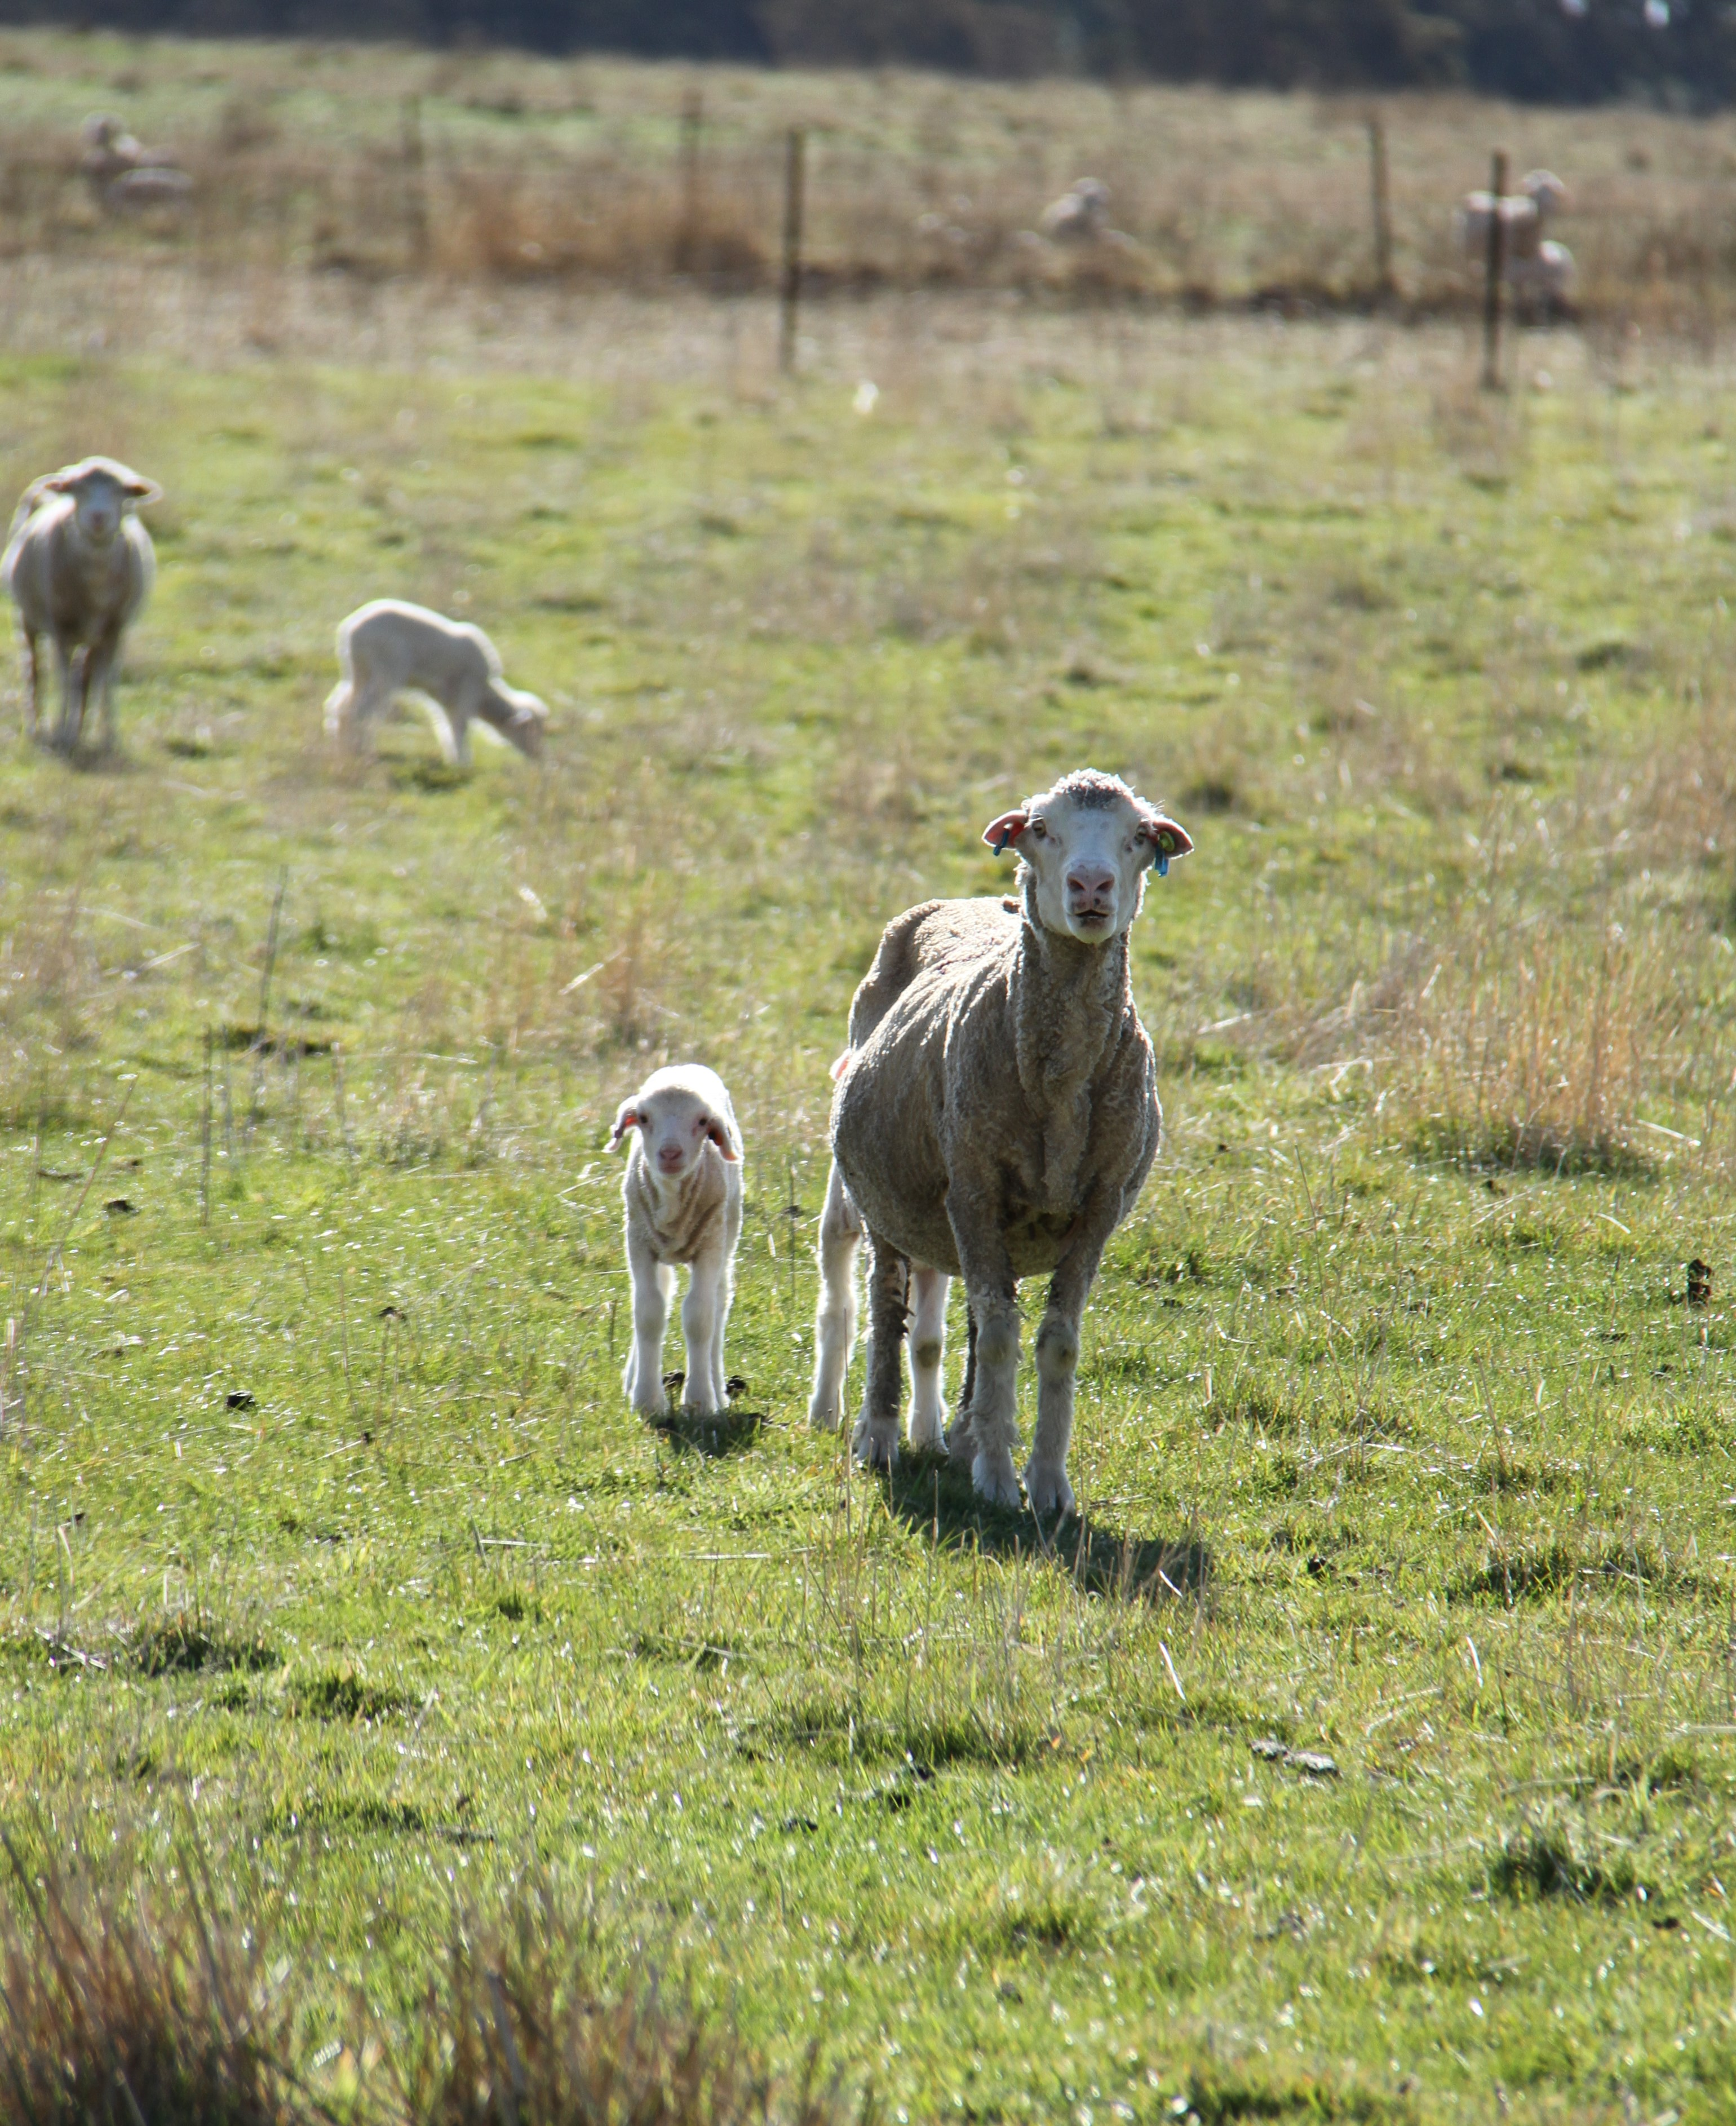 Ewe and lamb in a paddock